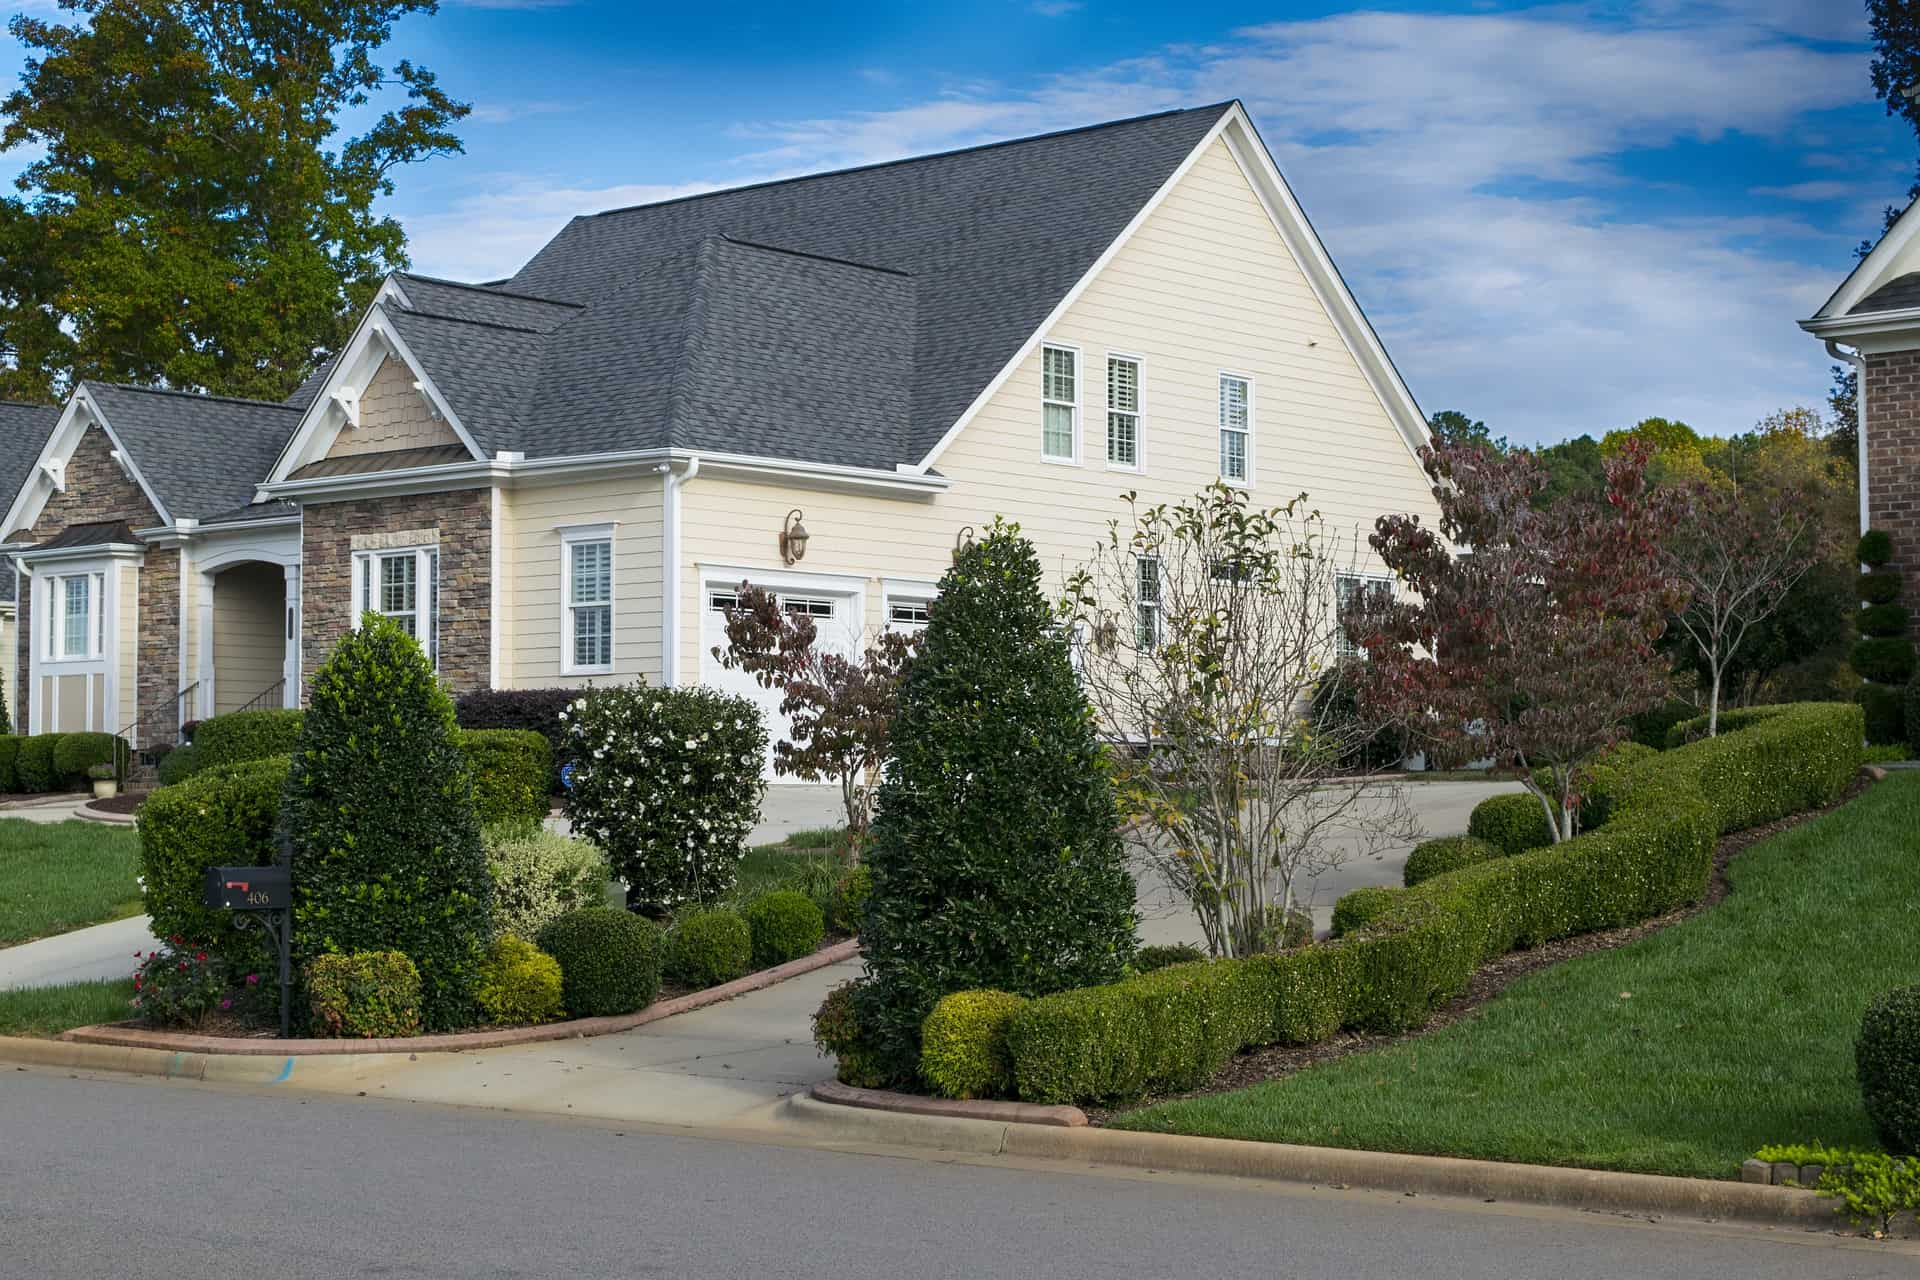 Want to Sell Your Home? You Need Curb Appeal!